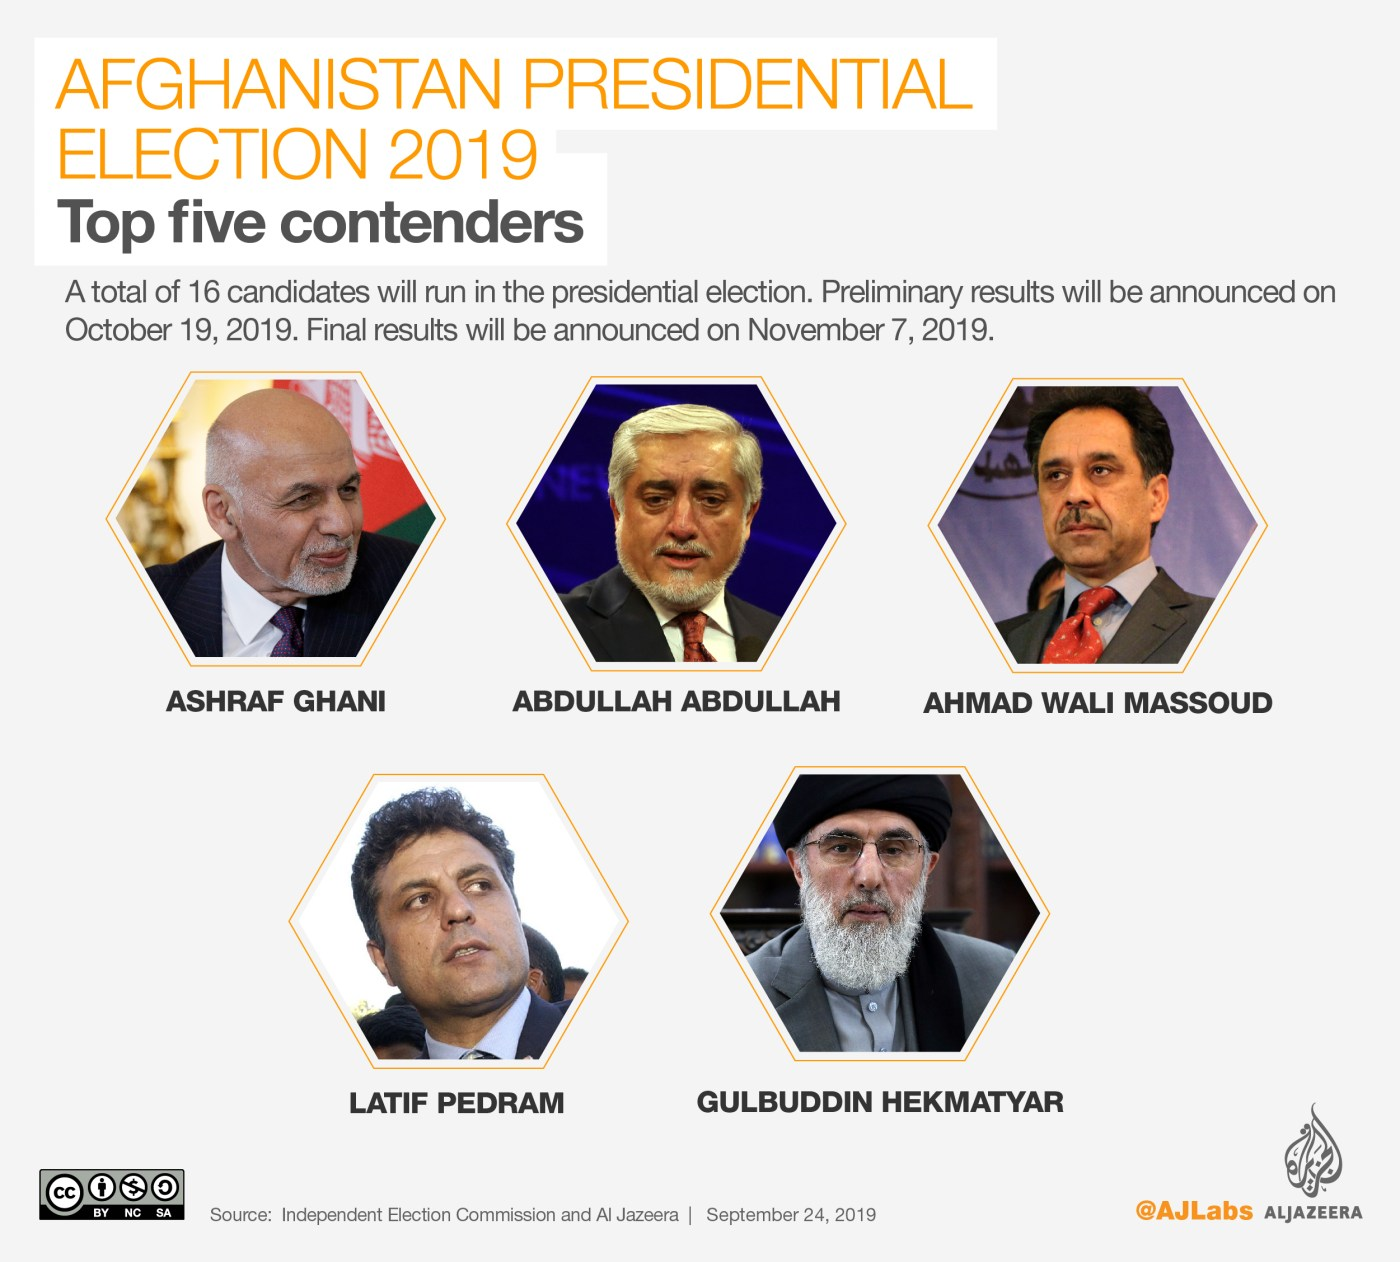 INTERACTIVE: AFGHANISTAN ELECTION 2018